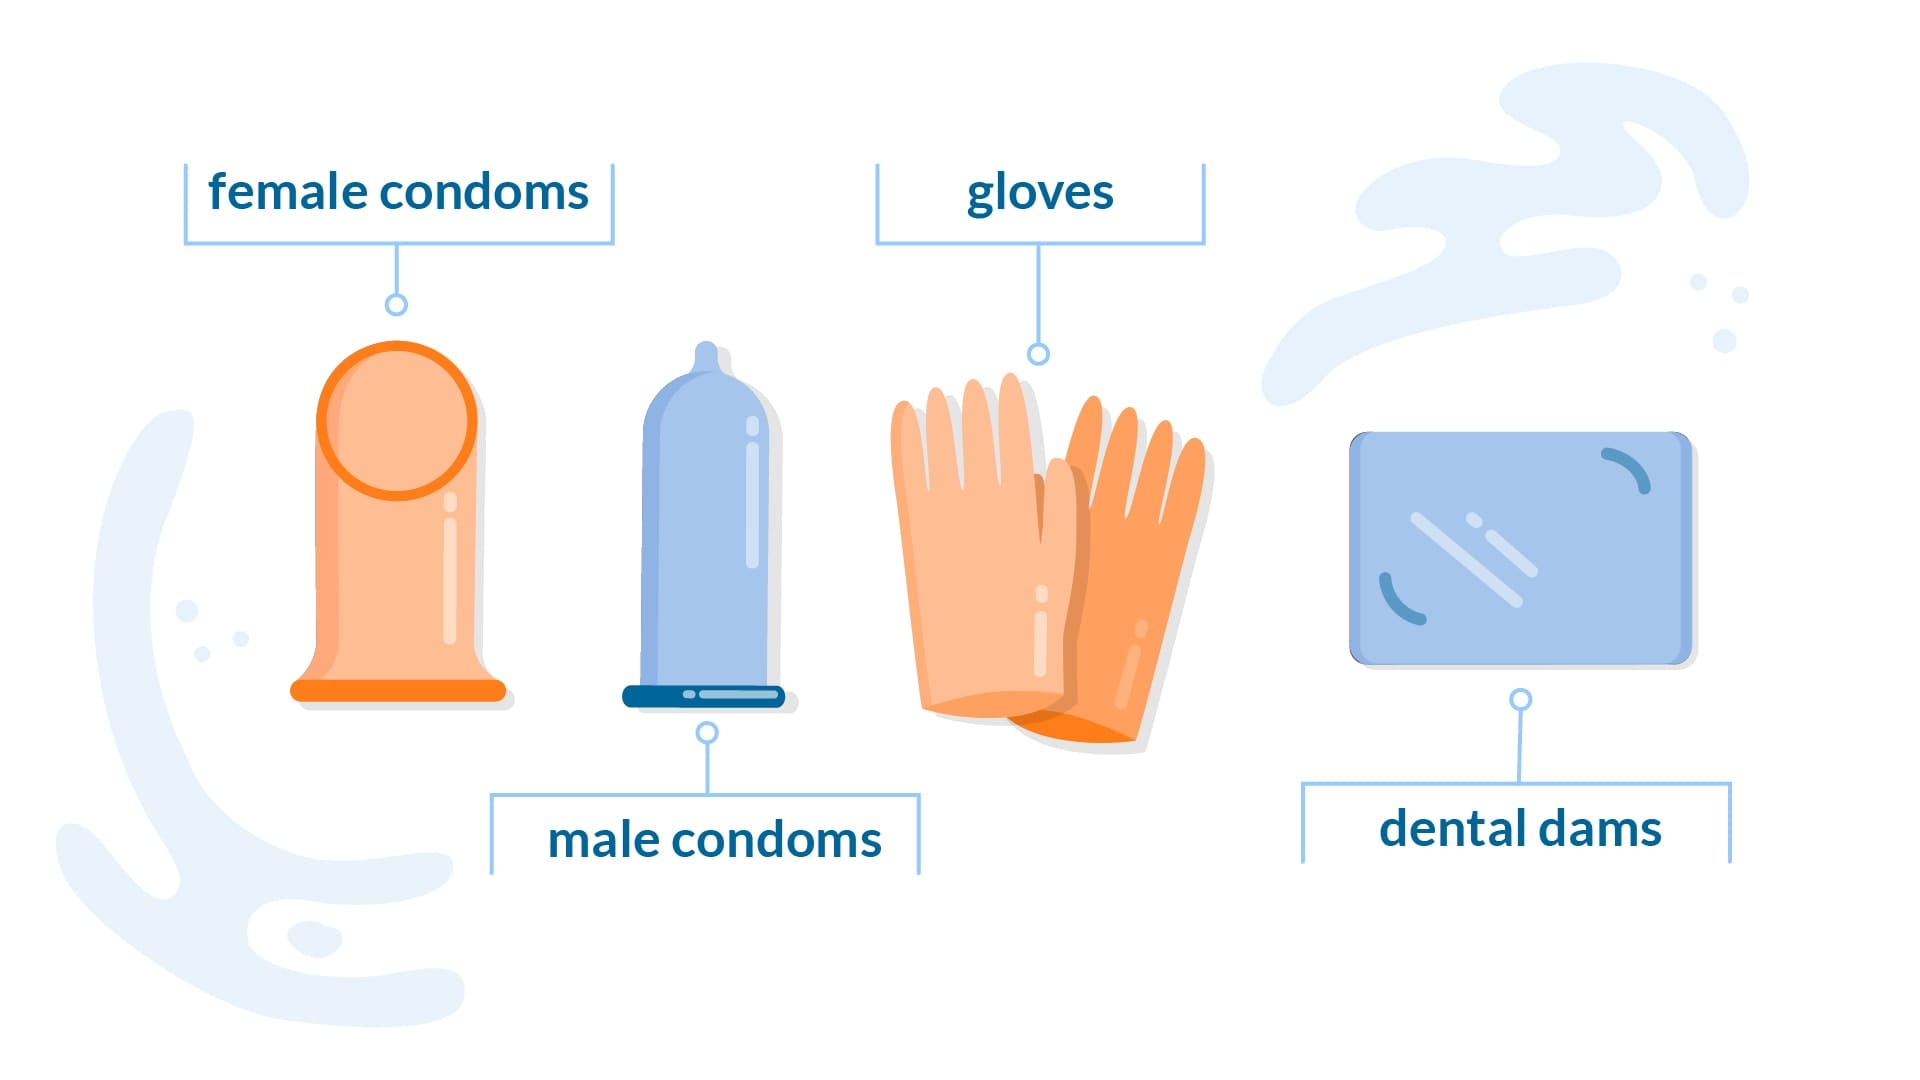 A graphic displaying cartoon versions of safe sex protection: internal condoms, external condoms, gloves, and dental dams.